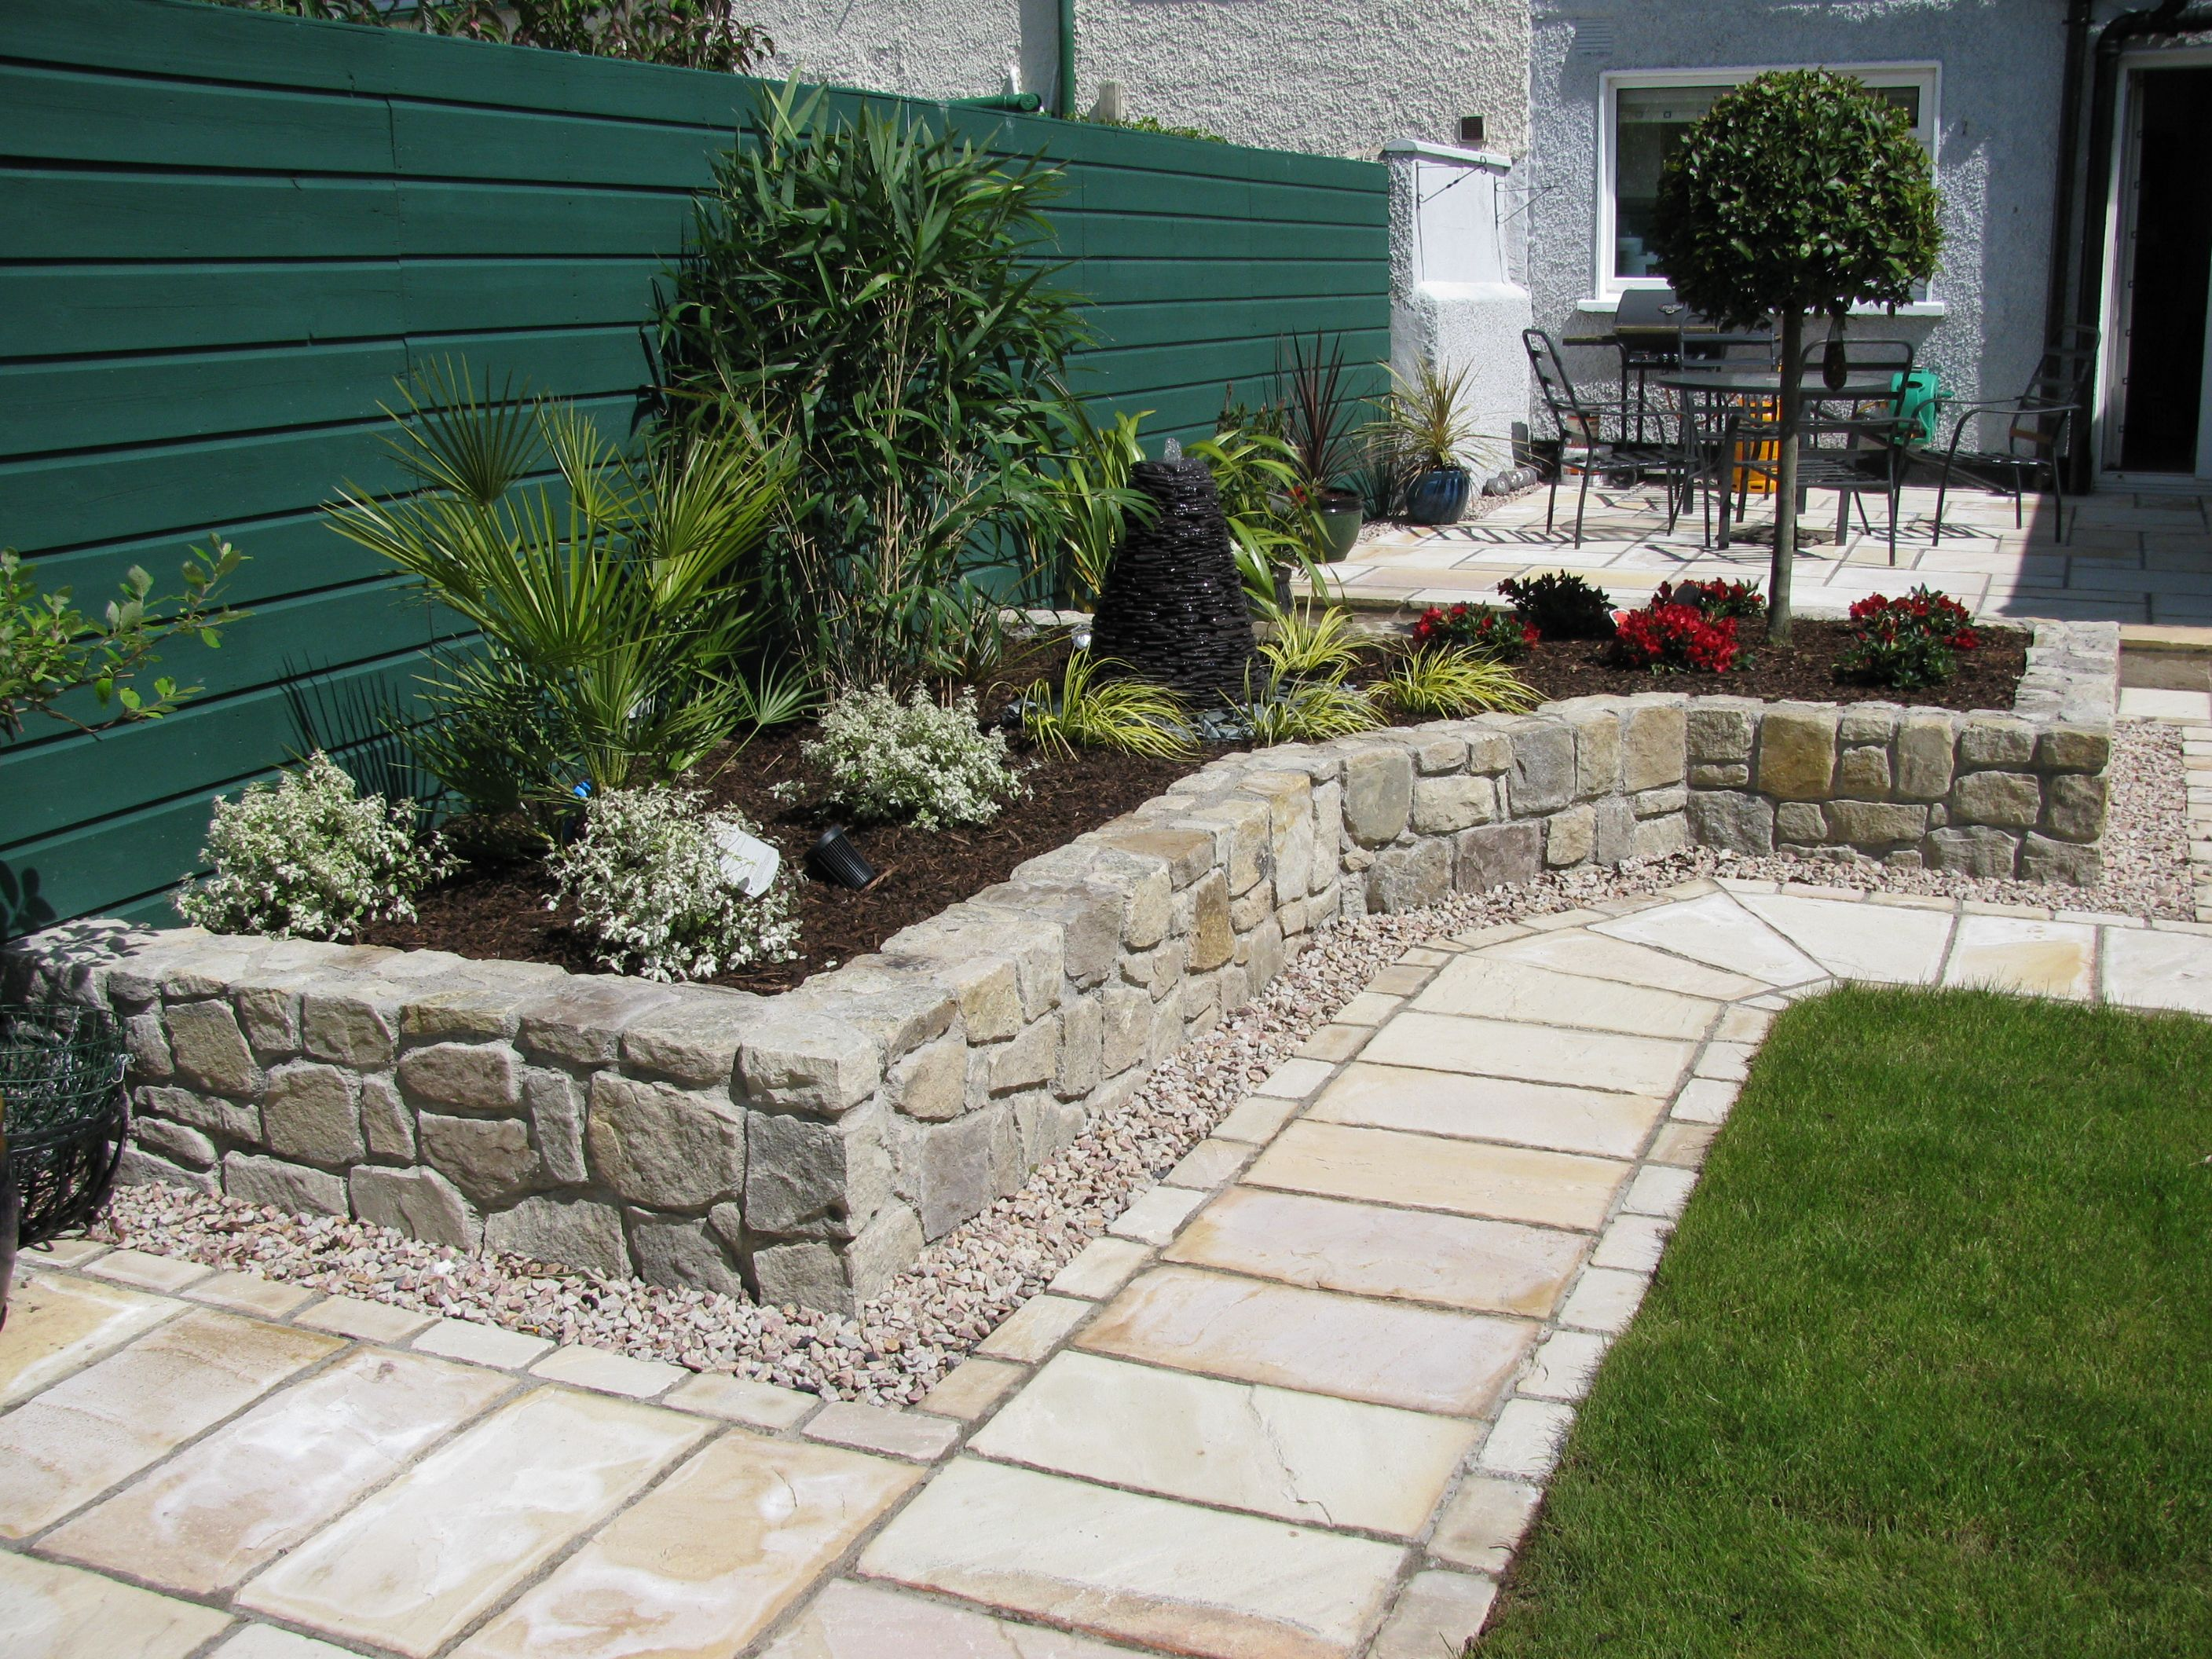 stone patio designs - Stone Patio Ideas On A Budget